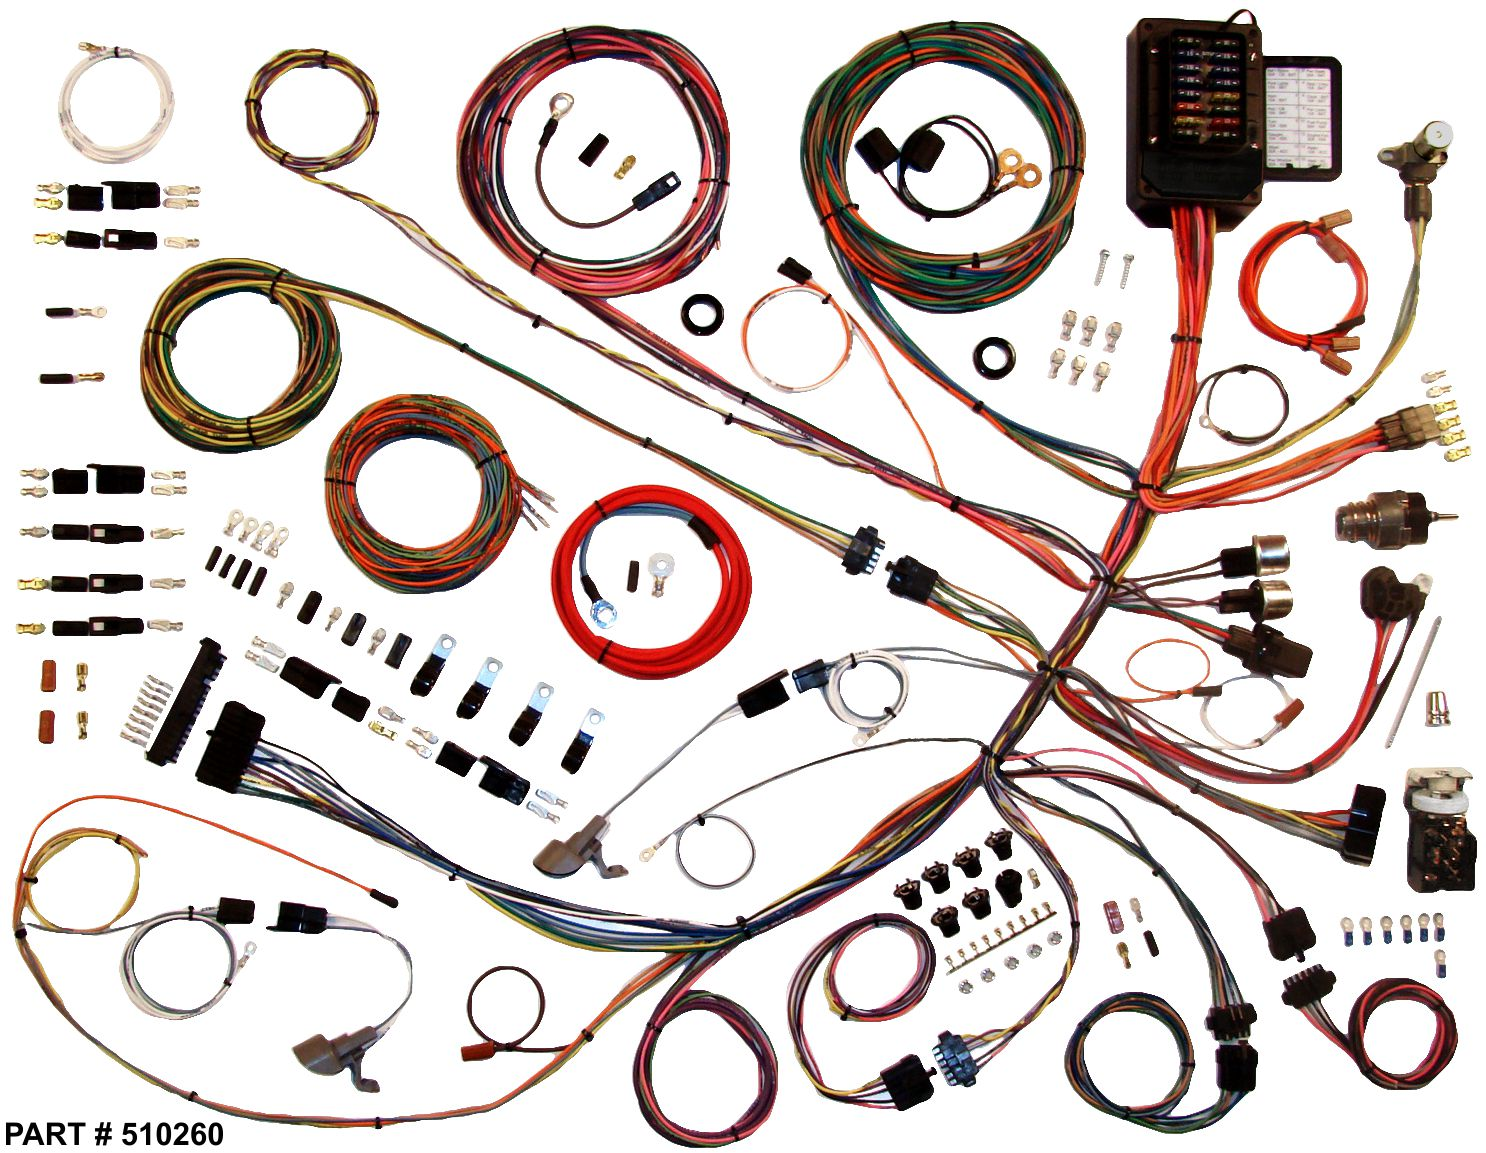 1961-66 Ford F100 Truck RestoMod Wiring Harness System